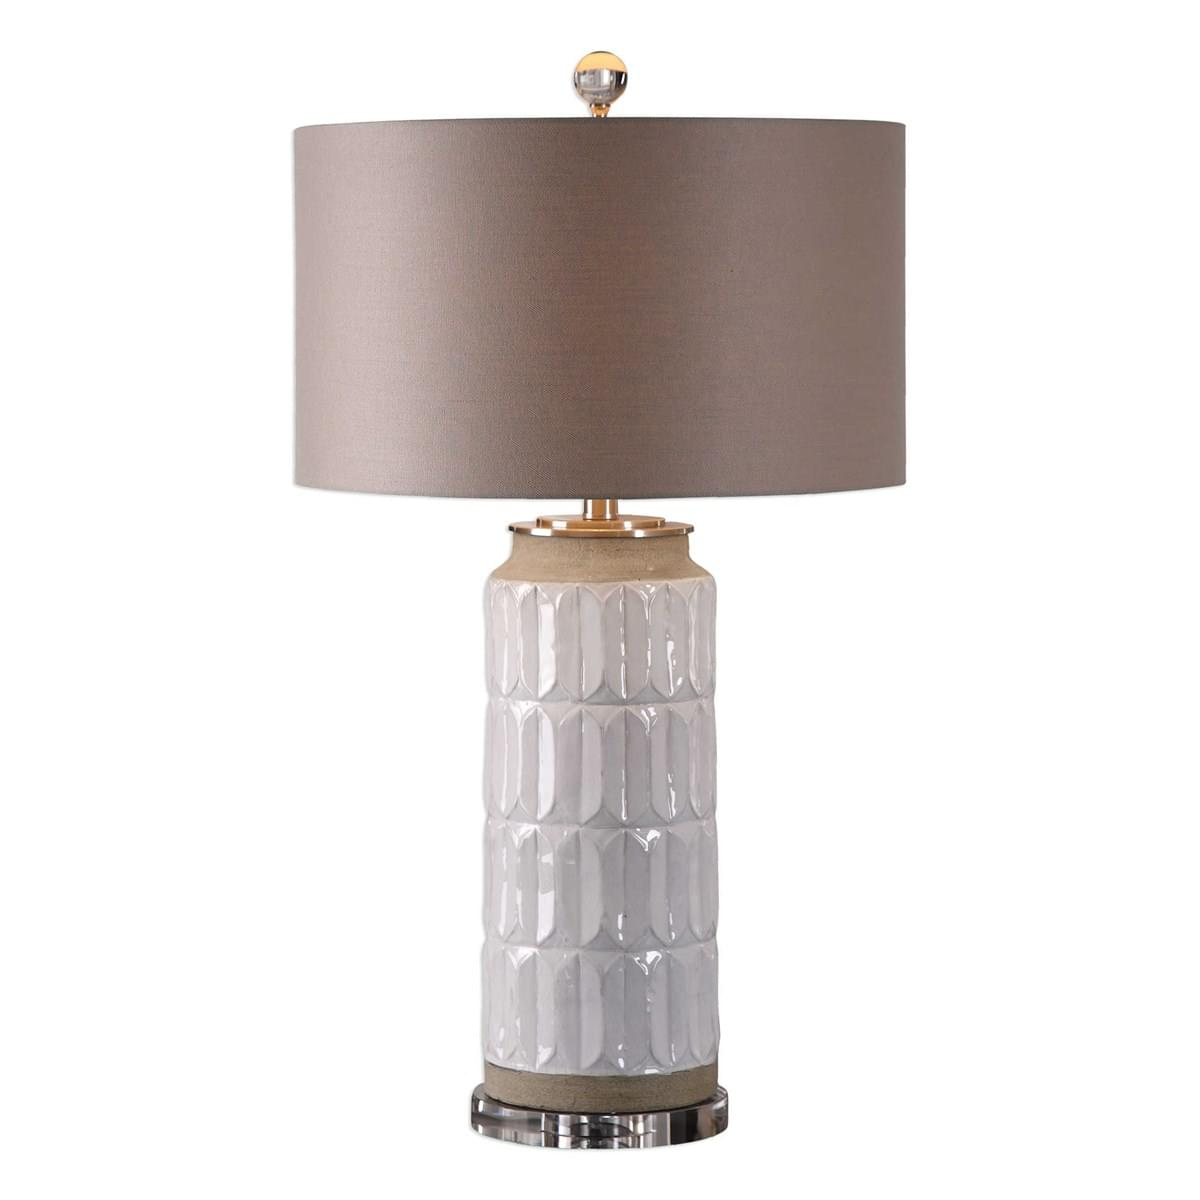 Uttermost Athilda Table Lamp at Mums Place Furniture Carmel CA